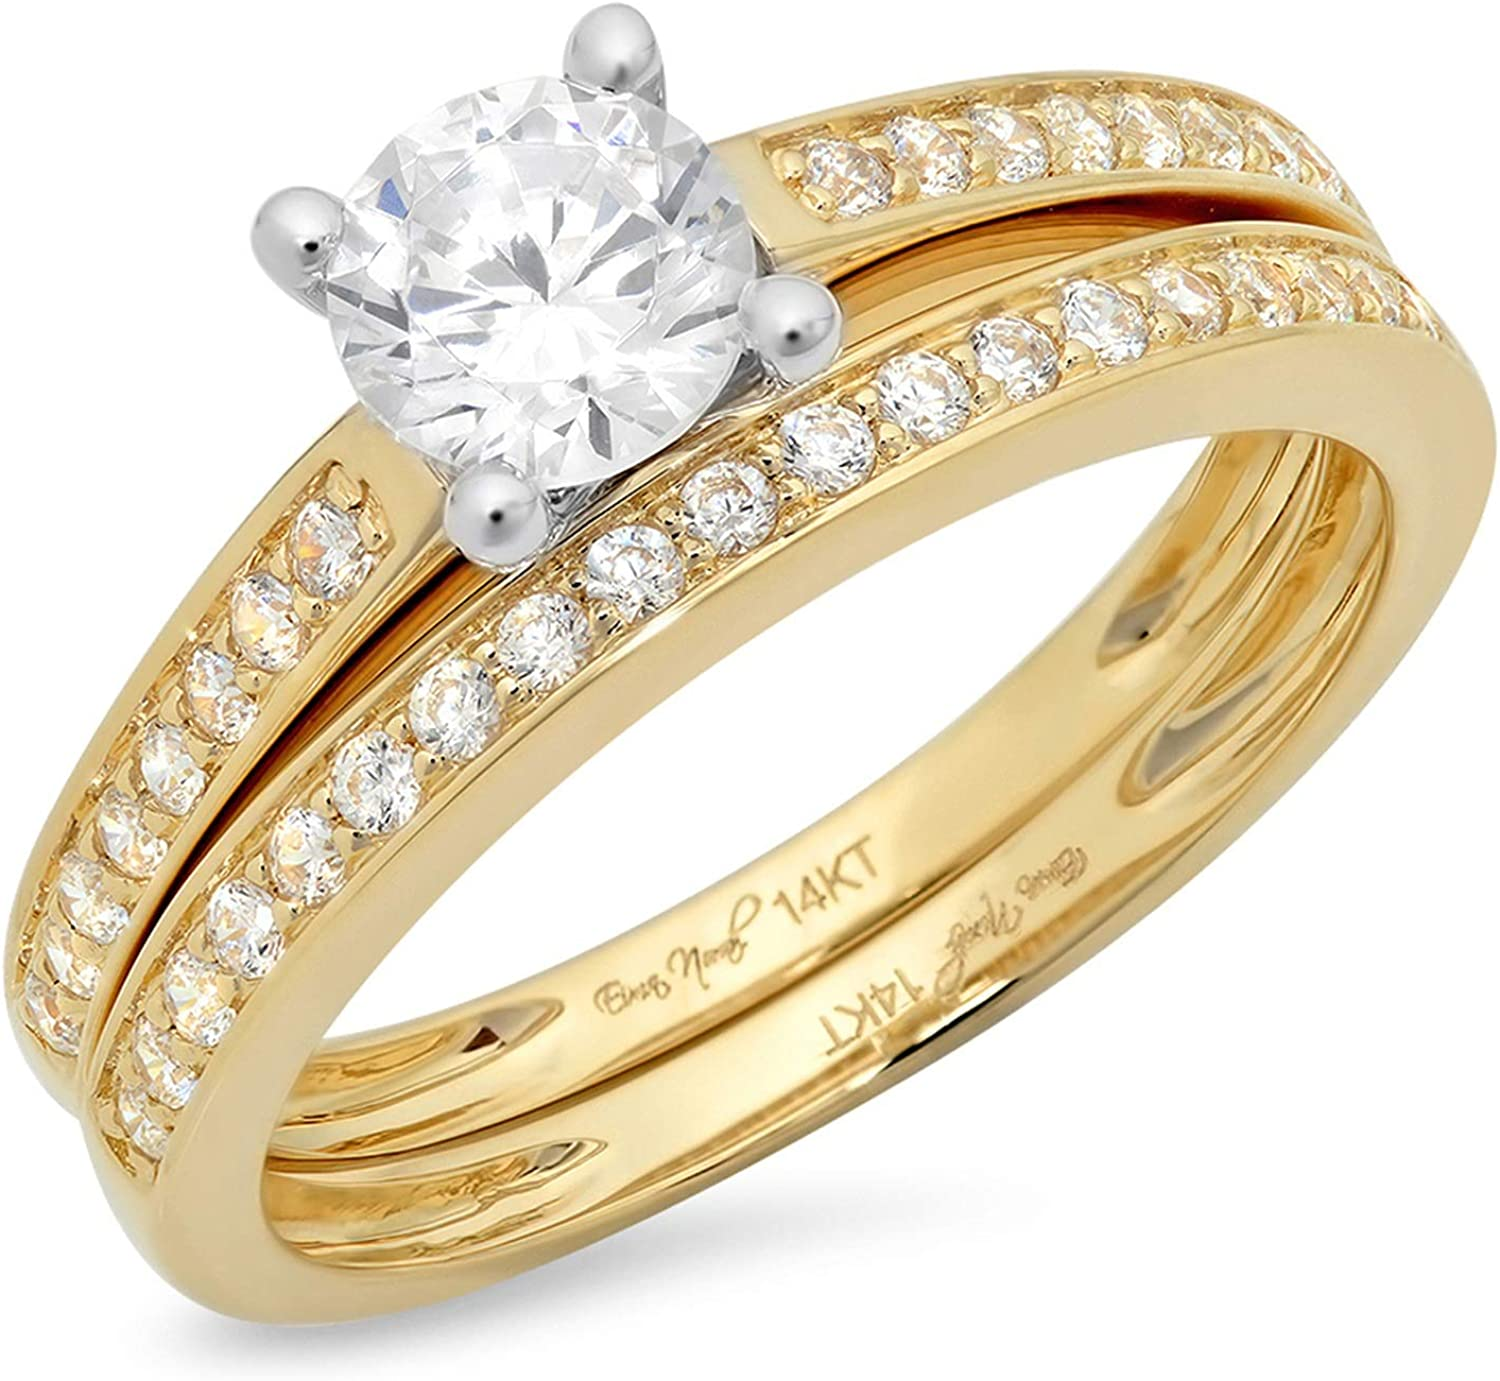 1.14ct Round Cut Pave Solitaire with Accent VVS1 Ideal D White Created Sapphire & Simulated Diamond Engagement Promise Designer Anniversary Wedding Bridal ring band set 14k 2 Tone Gold